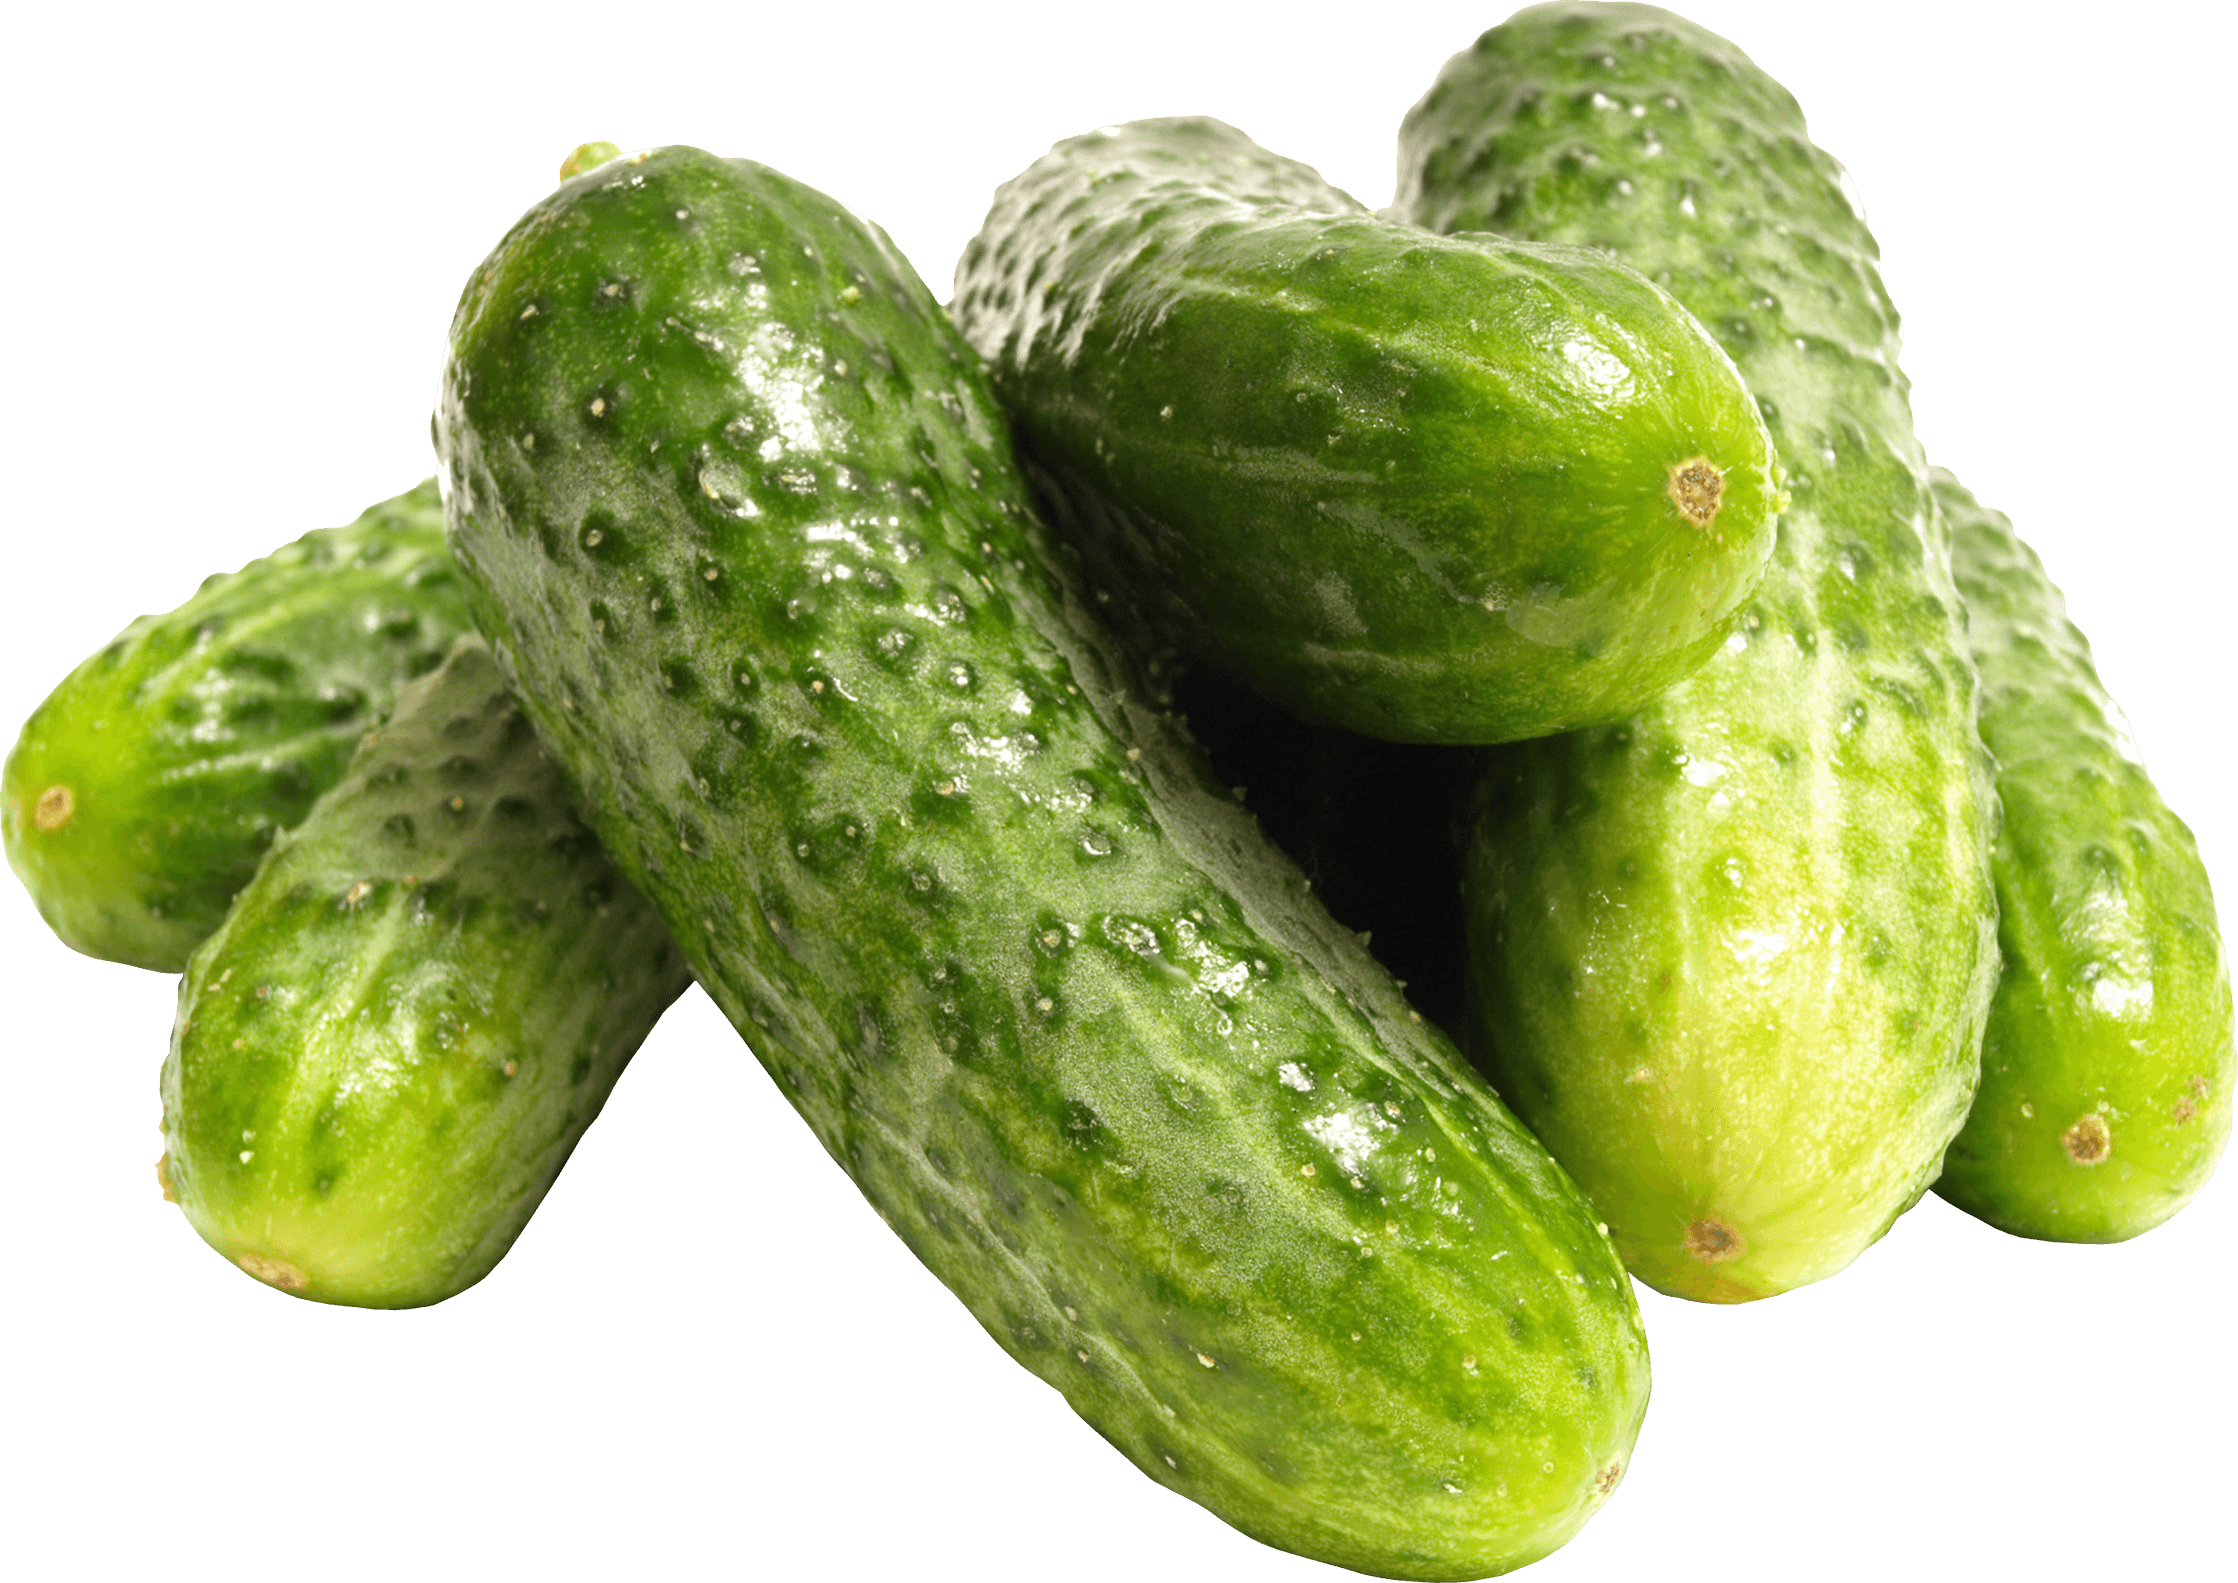 download green cucumber png image png image pngimg #26820